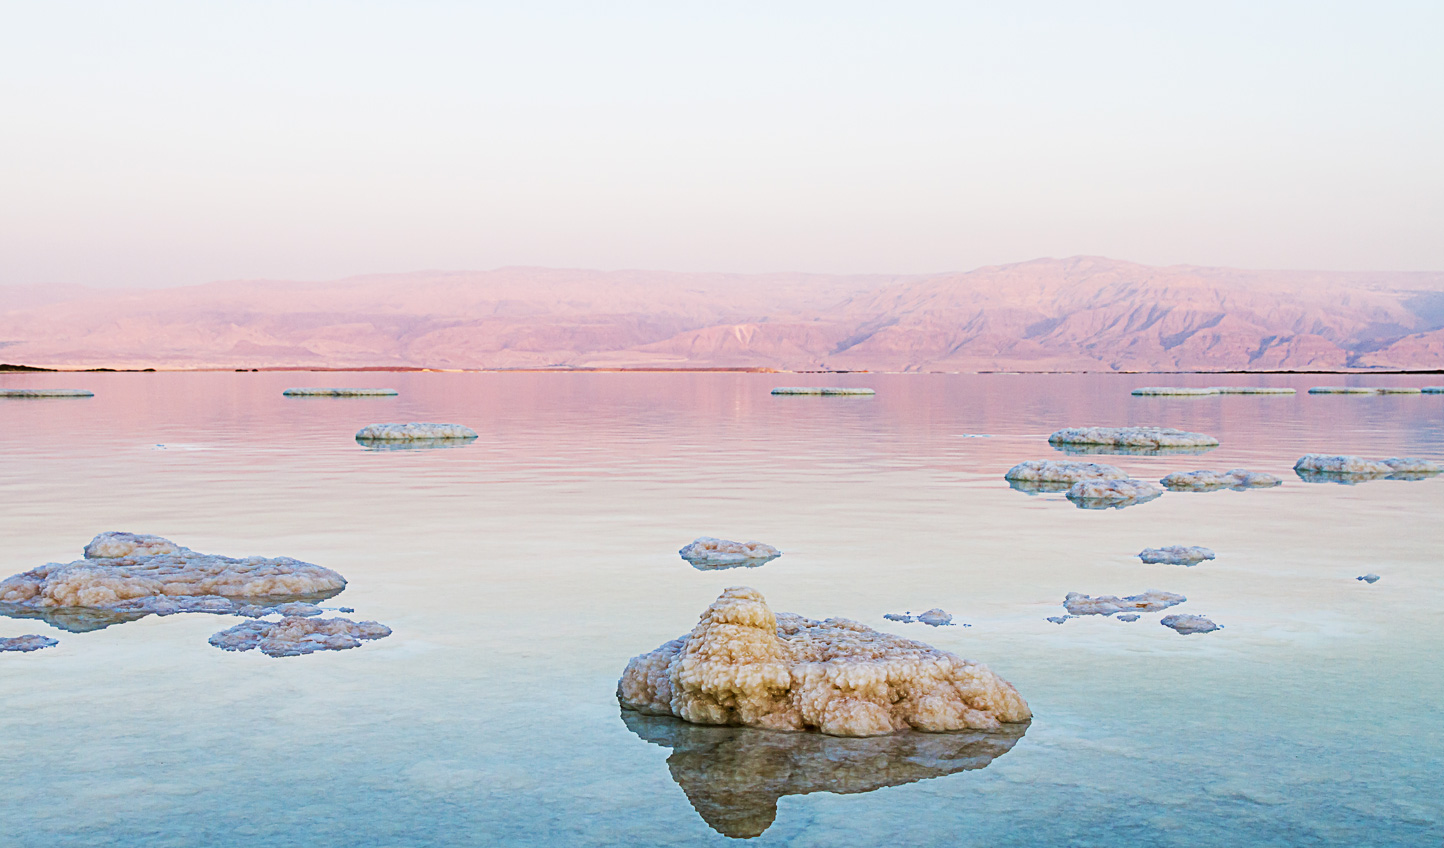 Soothe body and mind with a relaxing dip in the Dead Sea